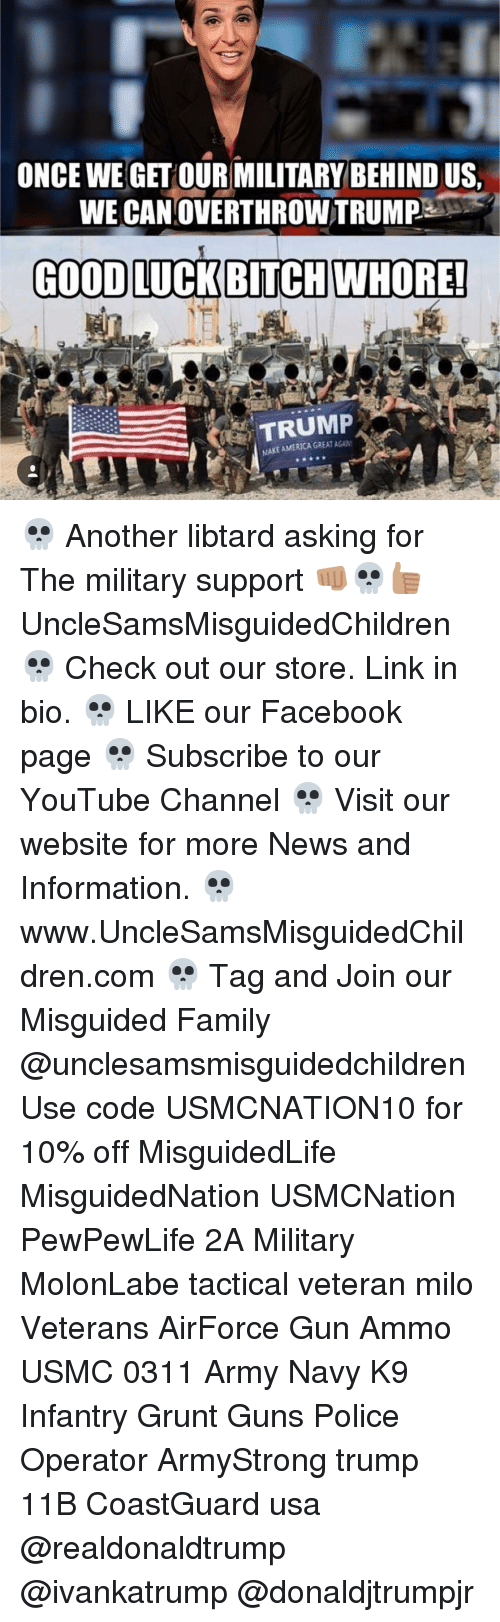 Whoreing: ONCE WE GET  OUR MILITARY BEHINDUS,  WE CANOVERTHROWTRUMP  GOOD LUCK BITCH WHORE!  TRUMP  MAKEAMERICAGREATAGAN 💀 Another libtard asking for The military support 👊🏽💀👍🏽 UncleSamsMisguidedChildren 💀 Check out our store. Link in bio. 💀 LIKE our Facebook page 💀 Subscribe to our YouTube Channel 💀 Visit our website for more News and Information. 💀 www.UncleSamsMisguidedChildren.com 💀 Tag and Join our Misguided Family @unclesamsmisguidedchildren Use code USMCNATION10 for 10% off MisguidedLife MisguidedNation USMCNation PewPewLife 2A Military MolonLabe tactical veteran milo Veterans AirForce Gun Ammo USMC 0311 Army Navy K9 Infantry Grunt Guns Police Operator ArmyStrong trump 11B CoastGuard usa @realdonaldtrump @ivankatrump @donaldjtrumpjr